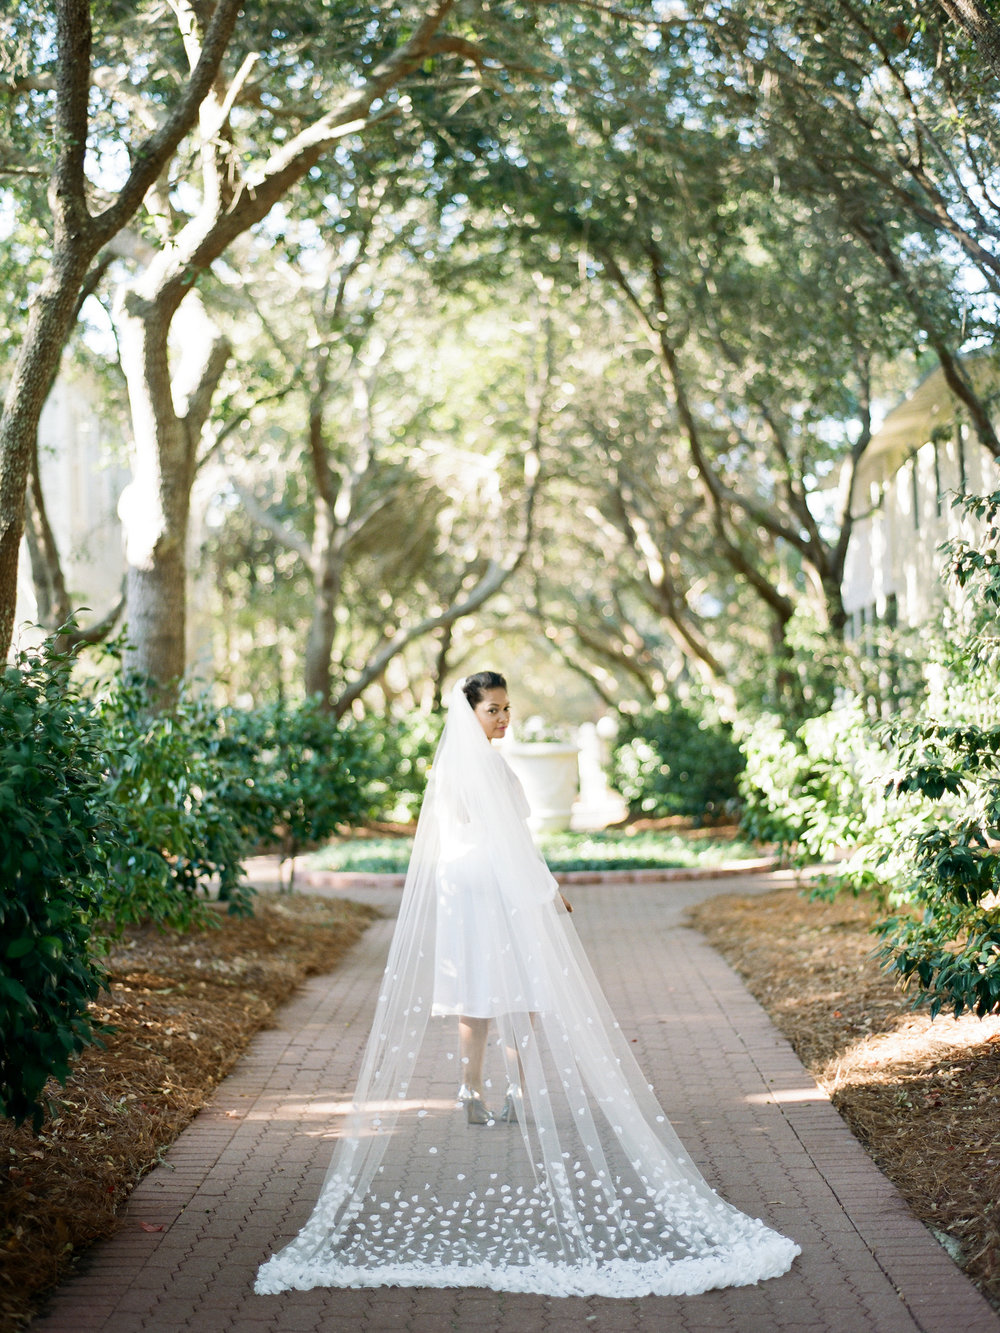 casandra_and_andy_carillon_beach_wedding_photographer_shannon_griffin_bride_and_groom-69 (1).jpg